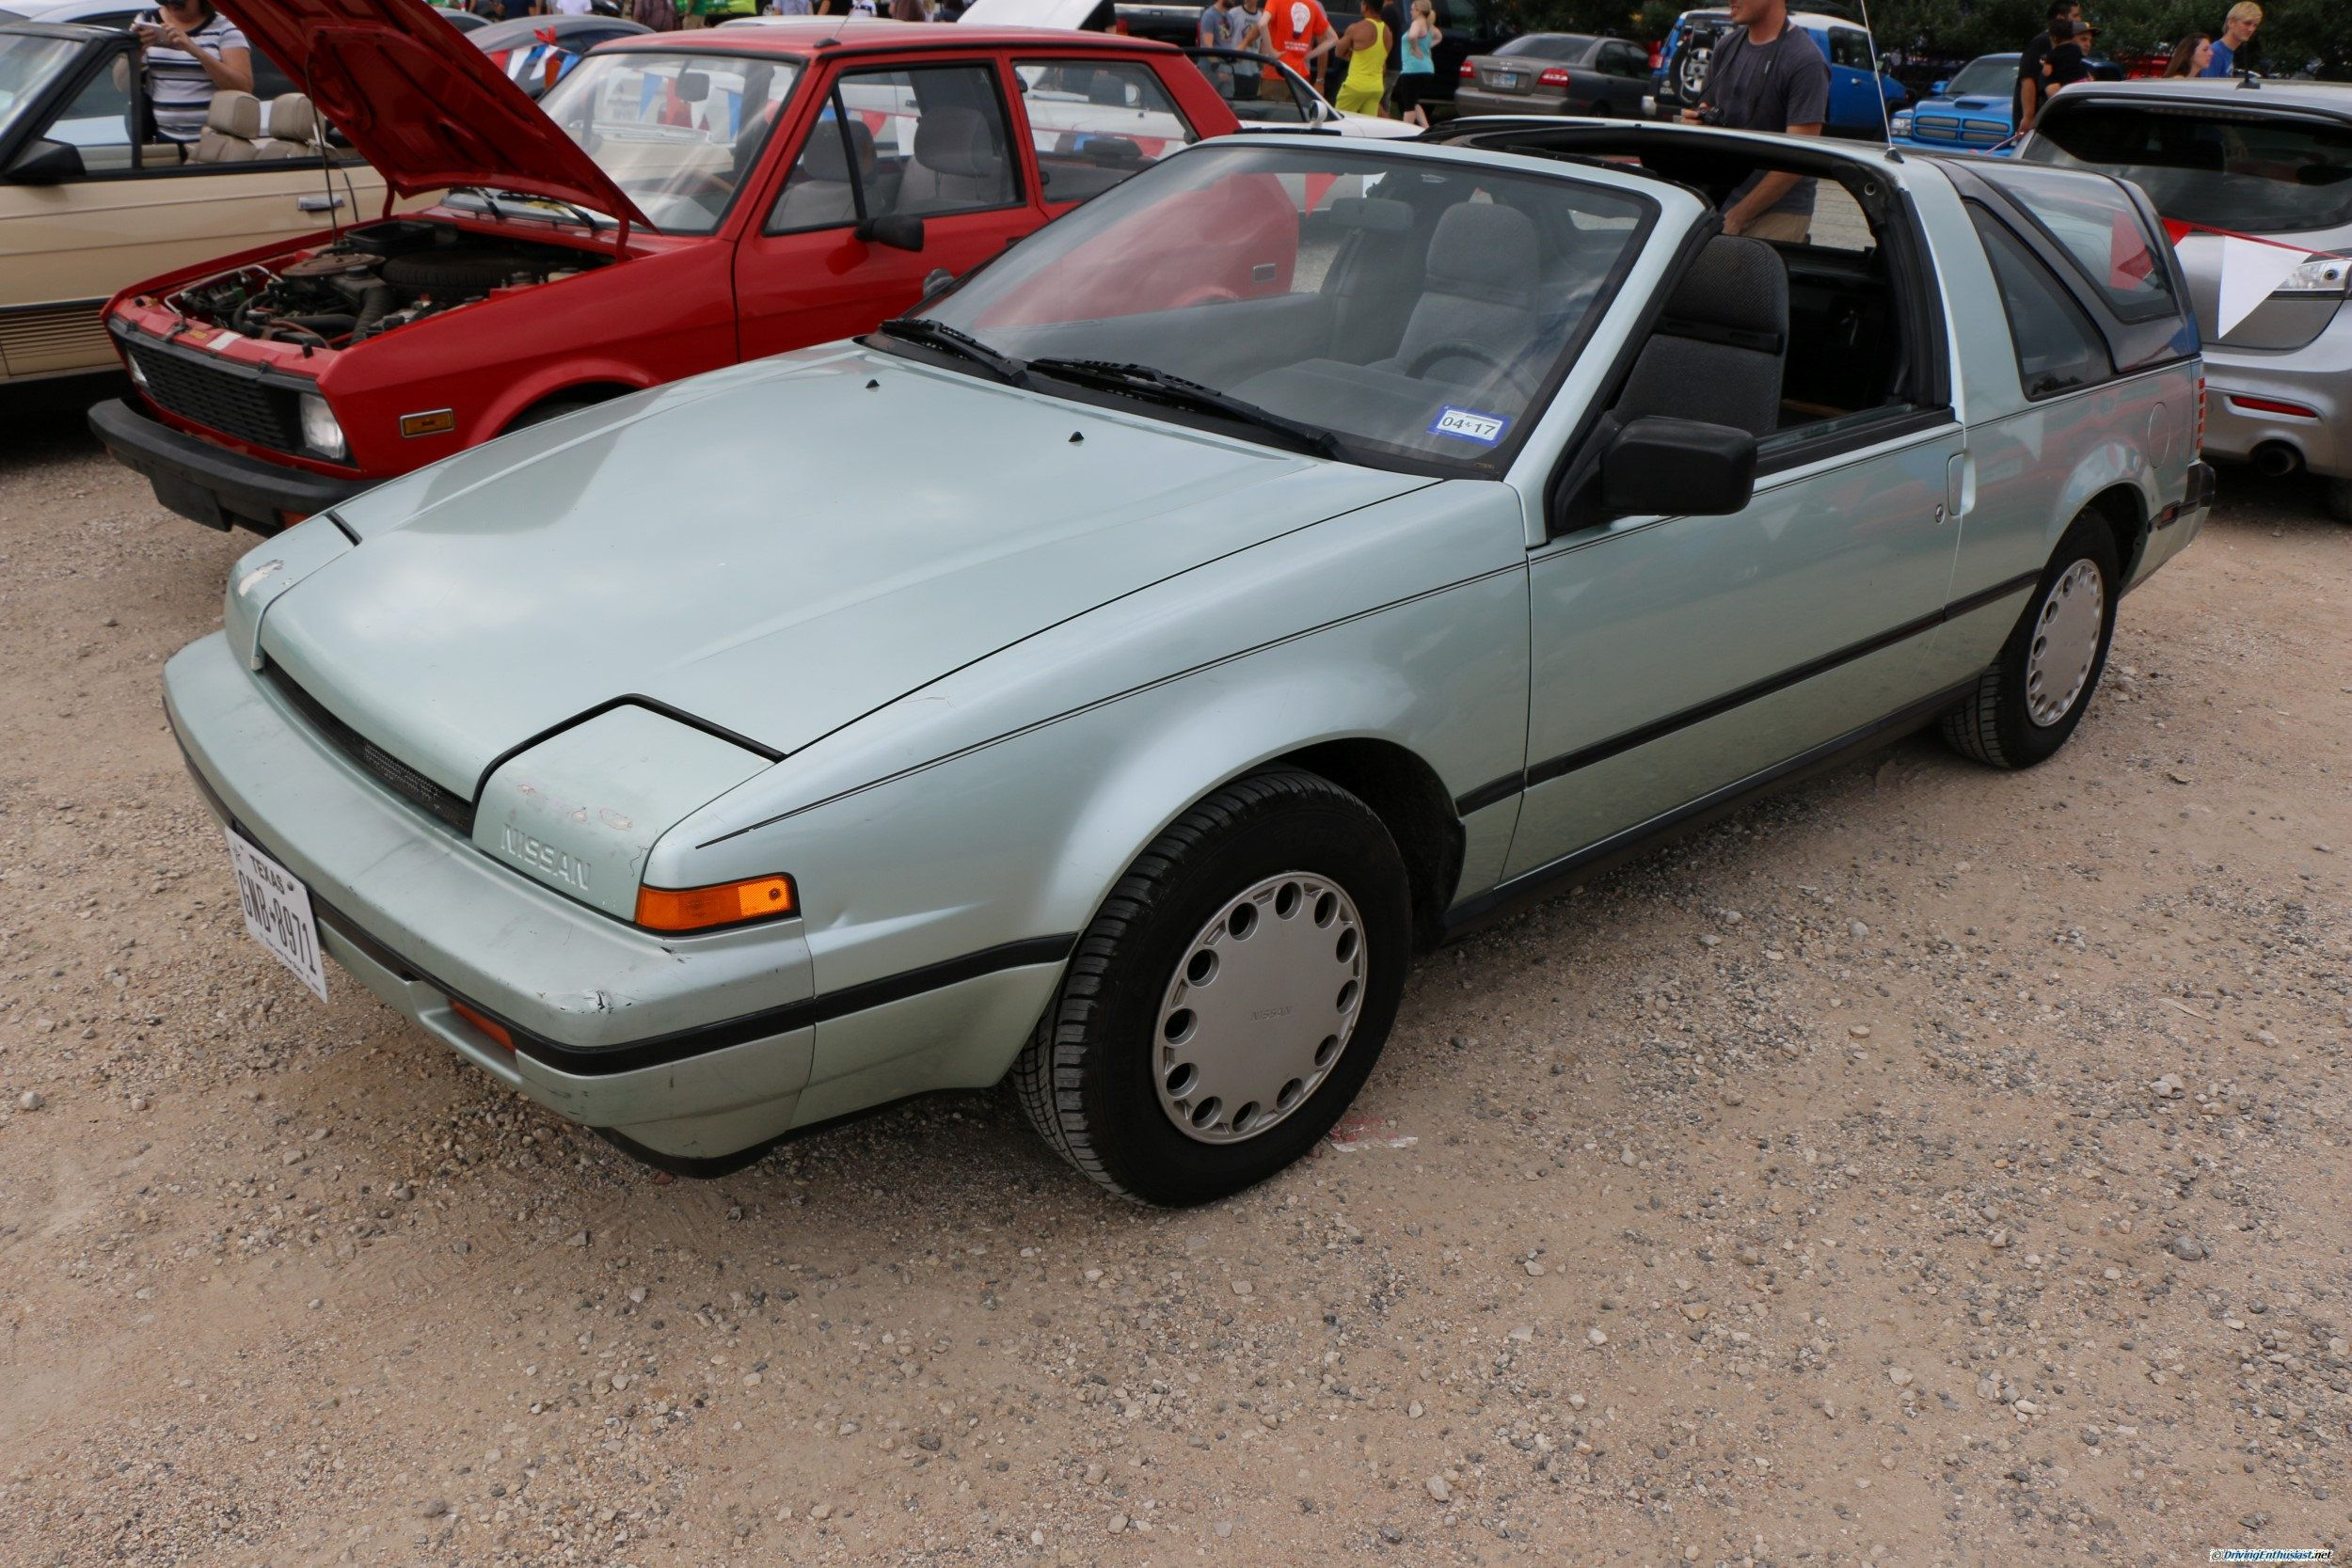 known as nissan exa in japan  code name n13  designed as a